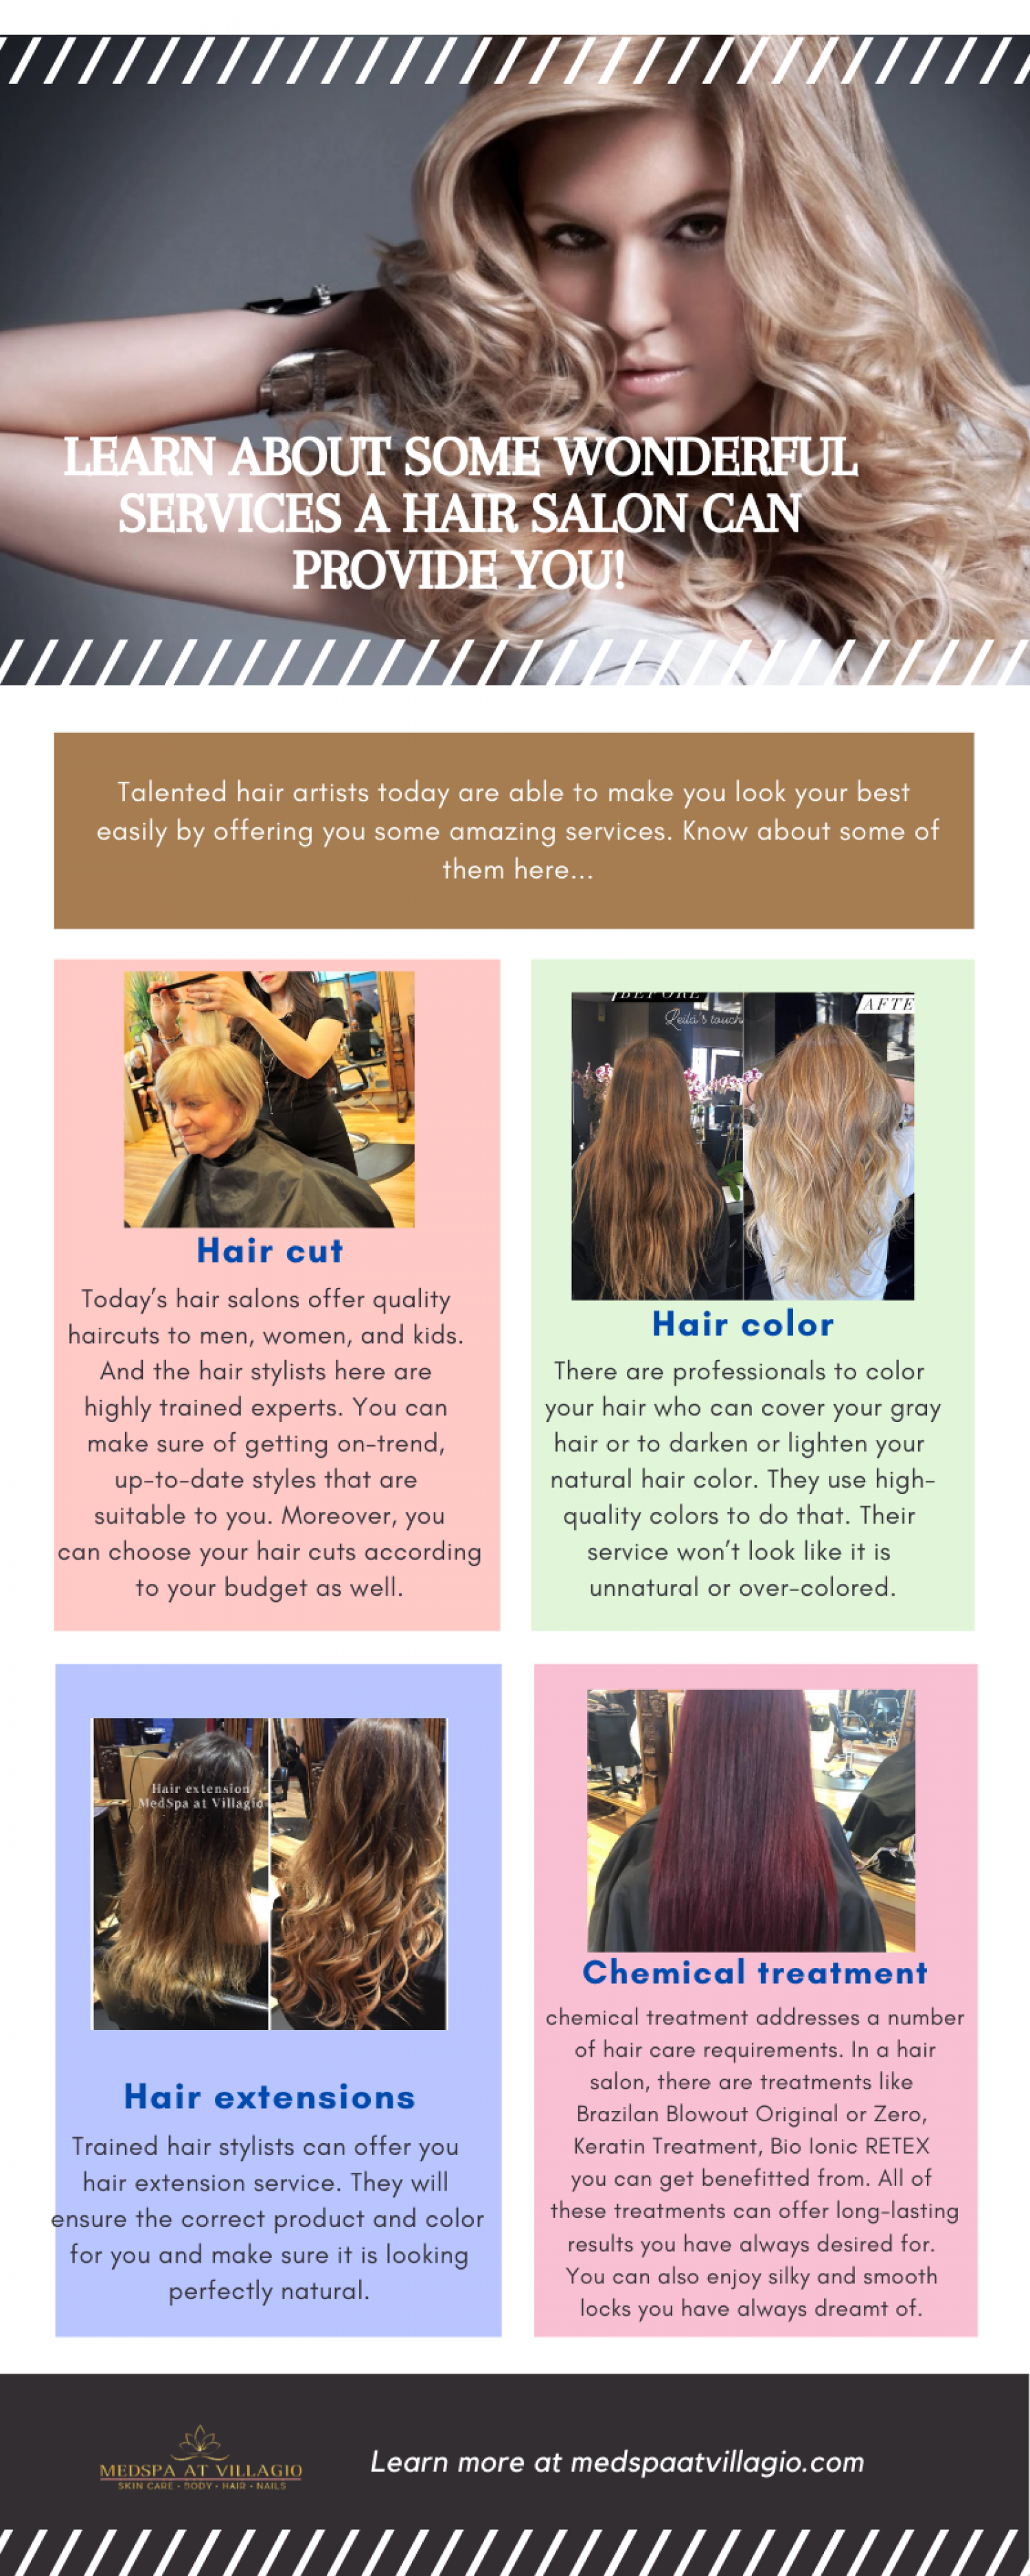 Learn About Some Wonderful Services A Hair Salon Can Provide You! Infographic